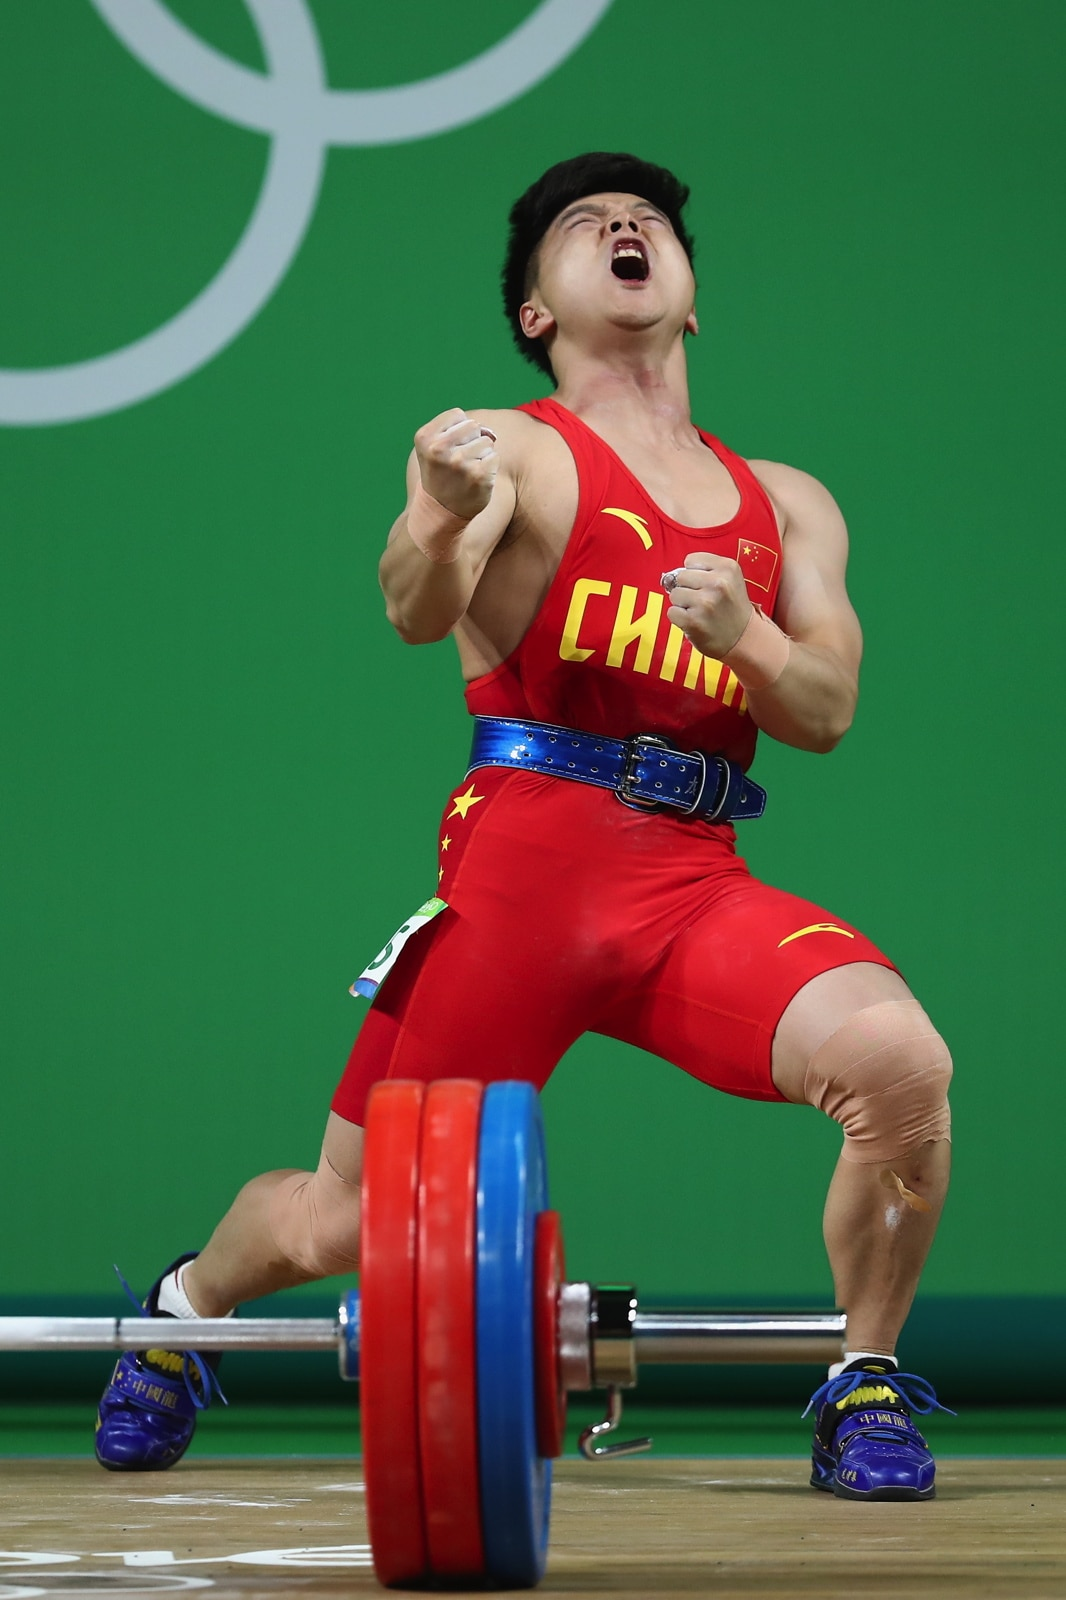 Weightlifting - Men's 56kg